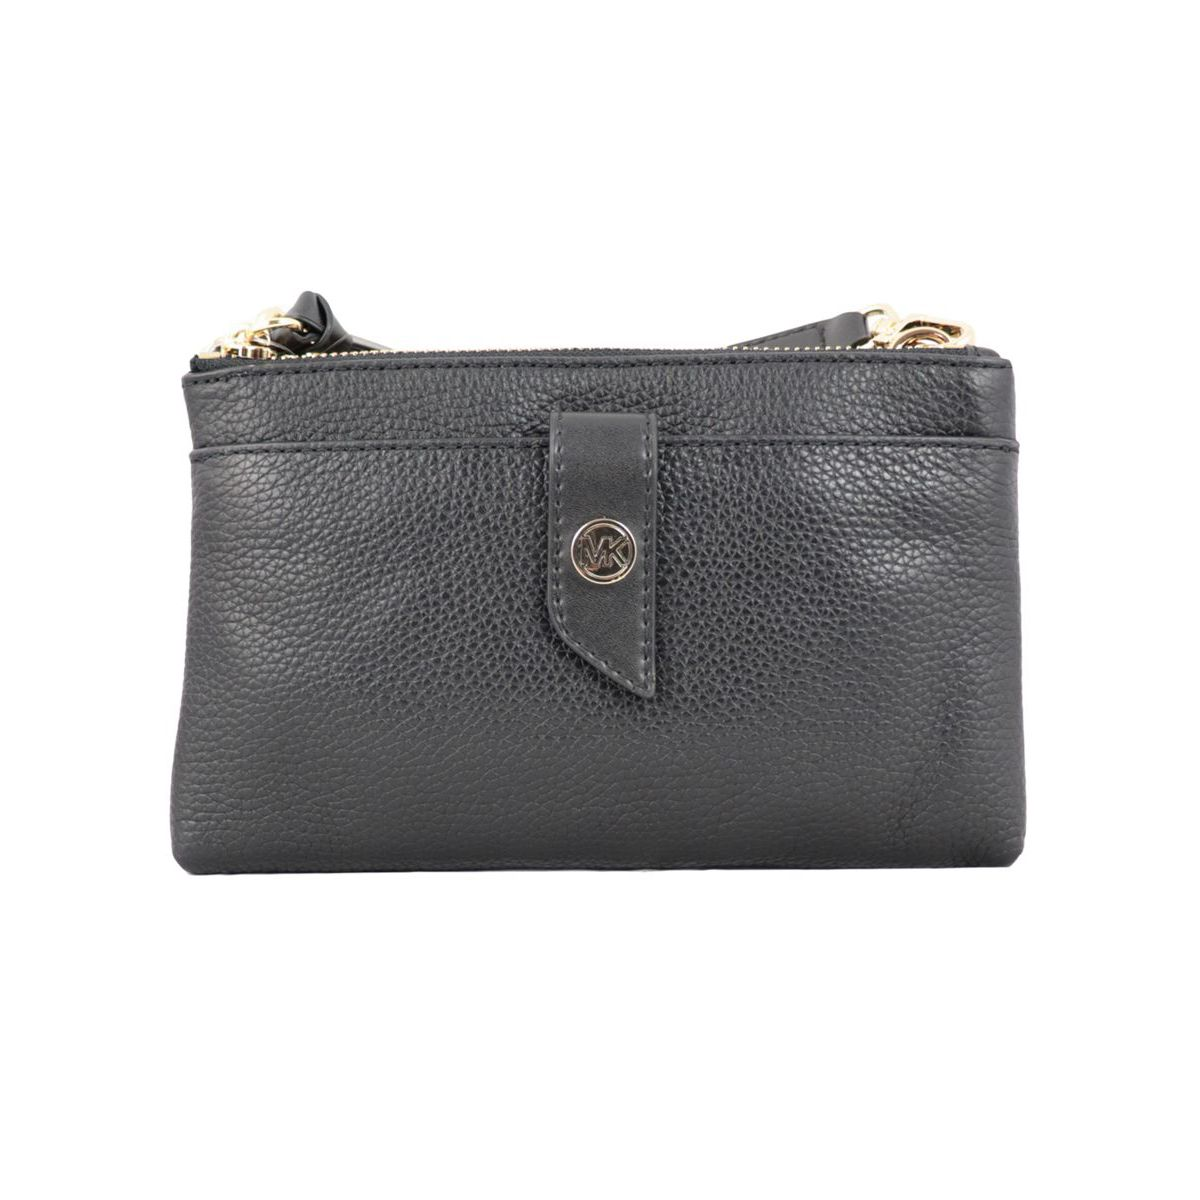 Small leather bag with double zip pockets Black Michael Kors